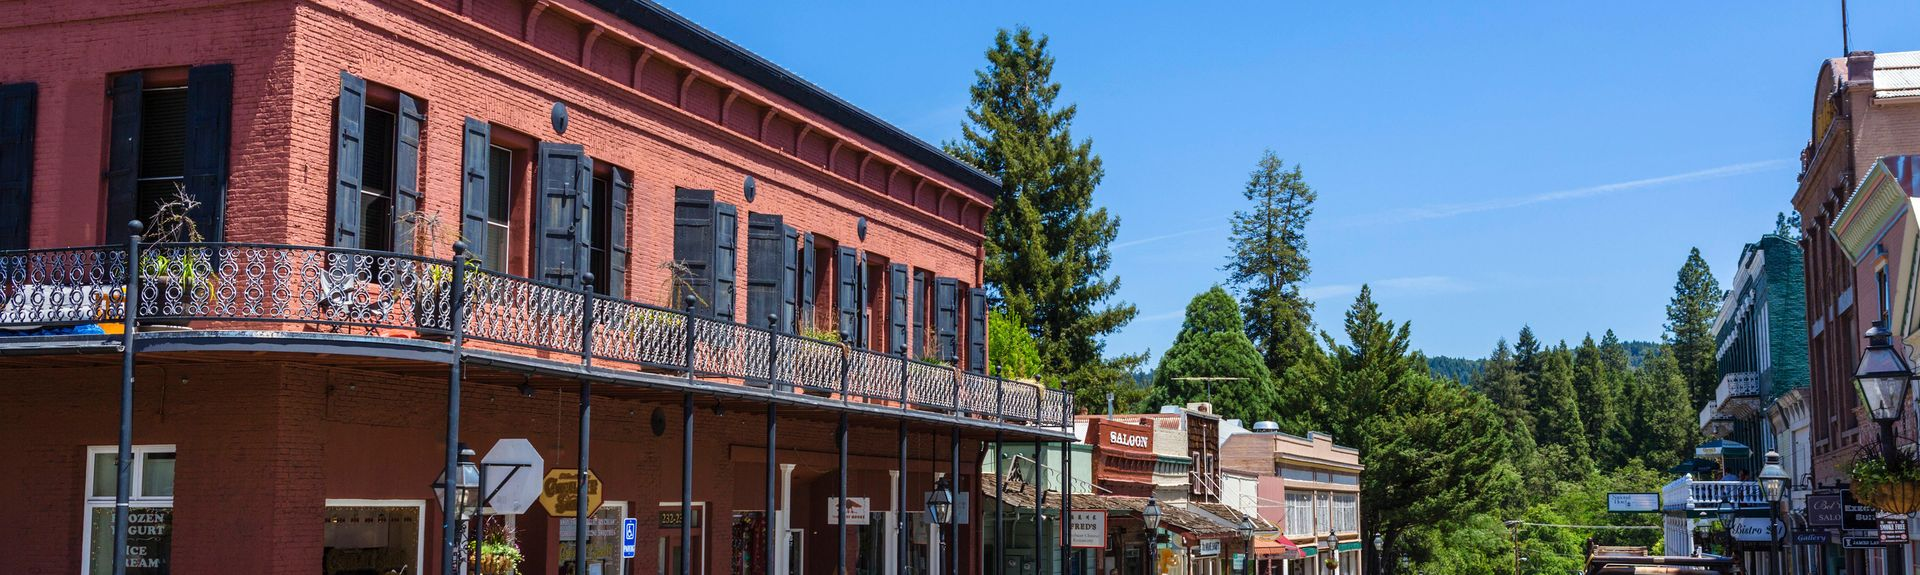 Nevada City, CA, USA